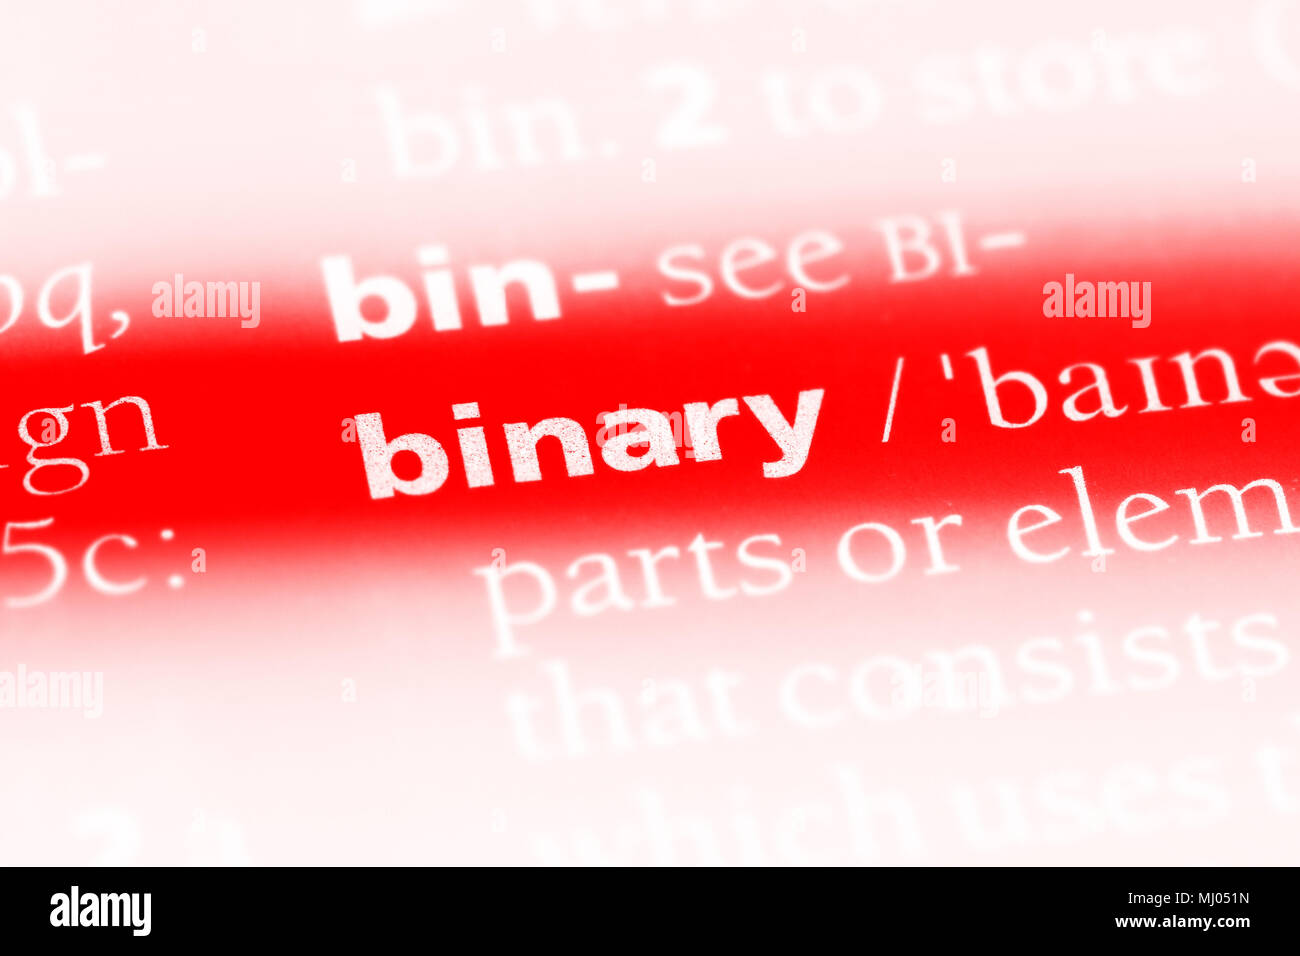 binary word in a dictionary. binary concept. Stock Photo